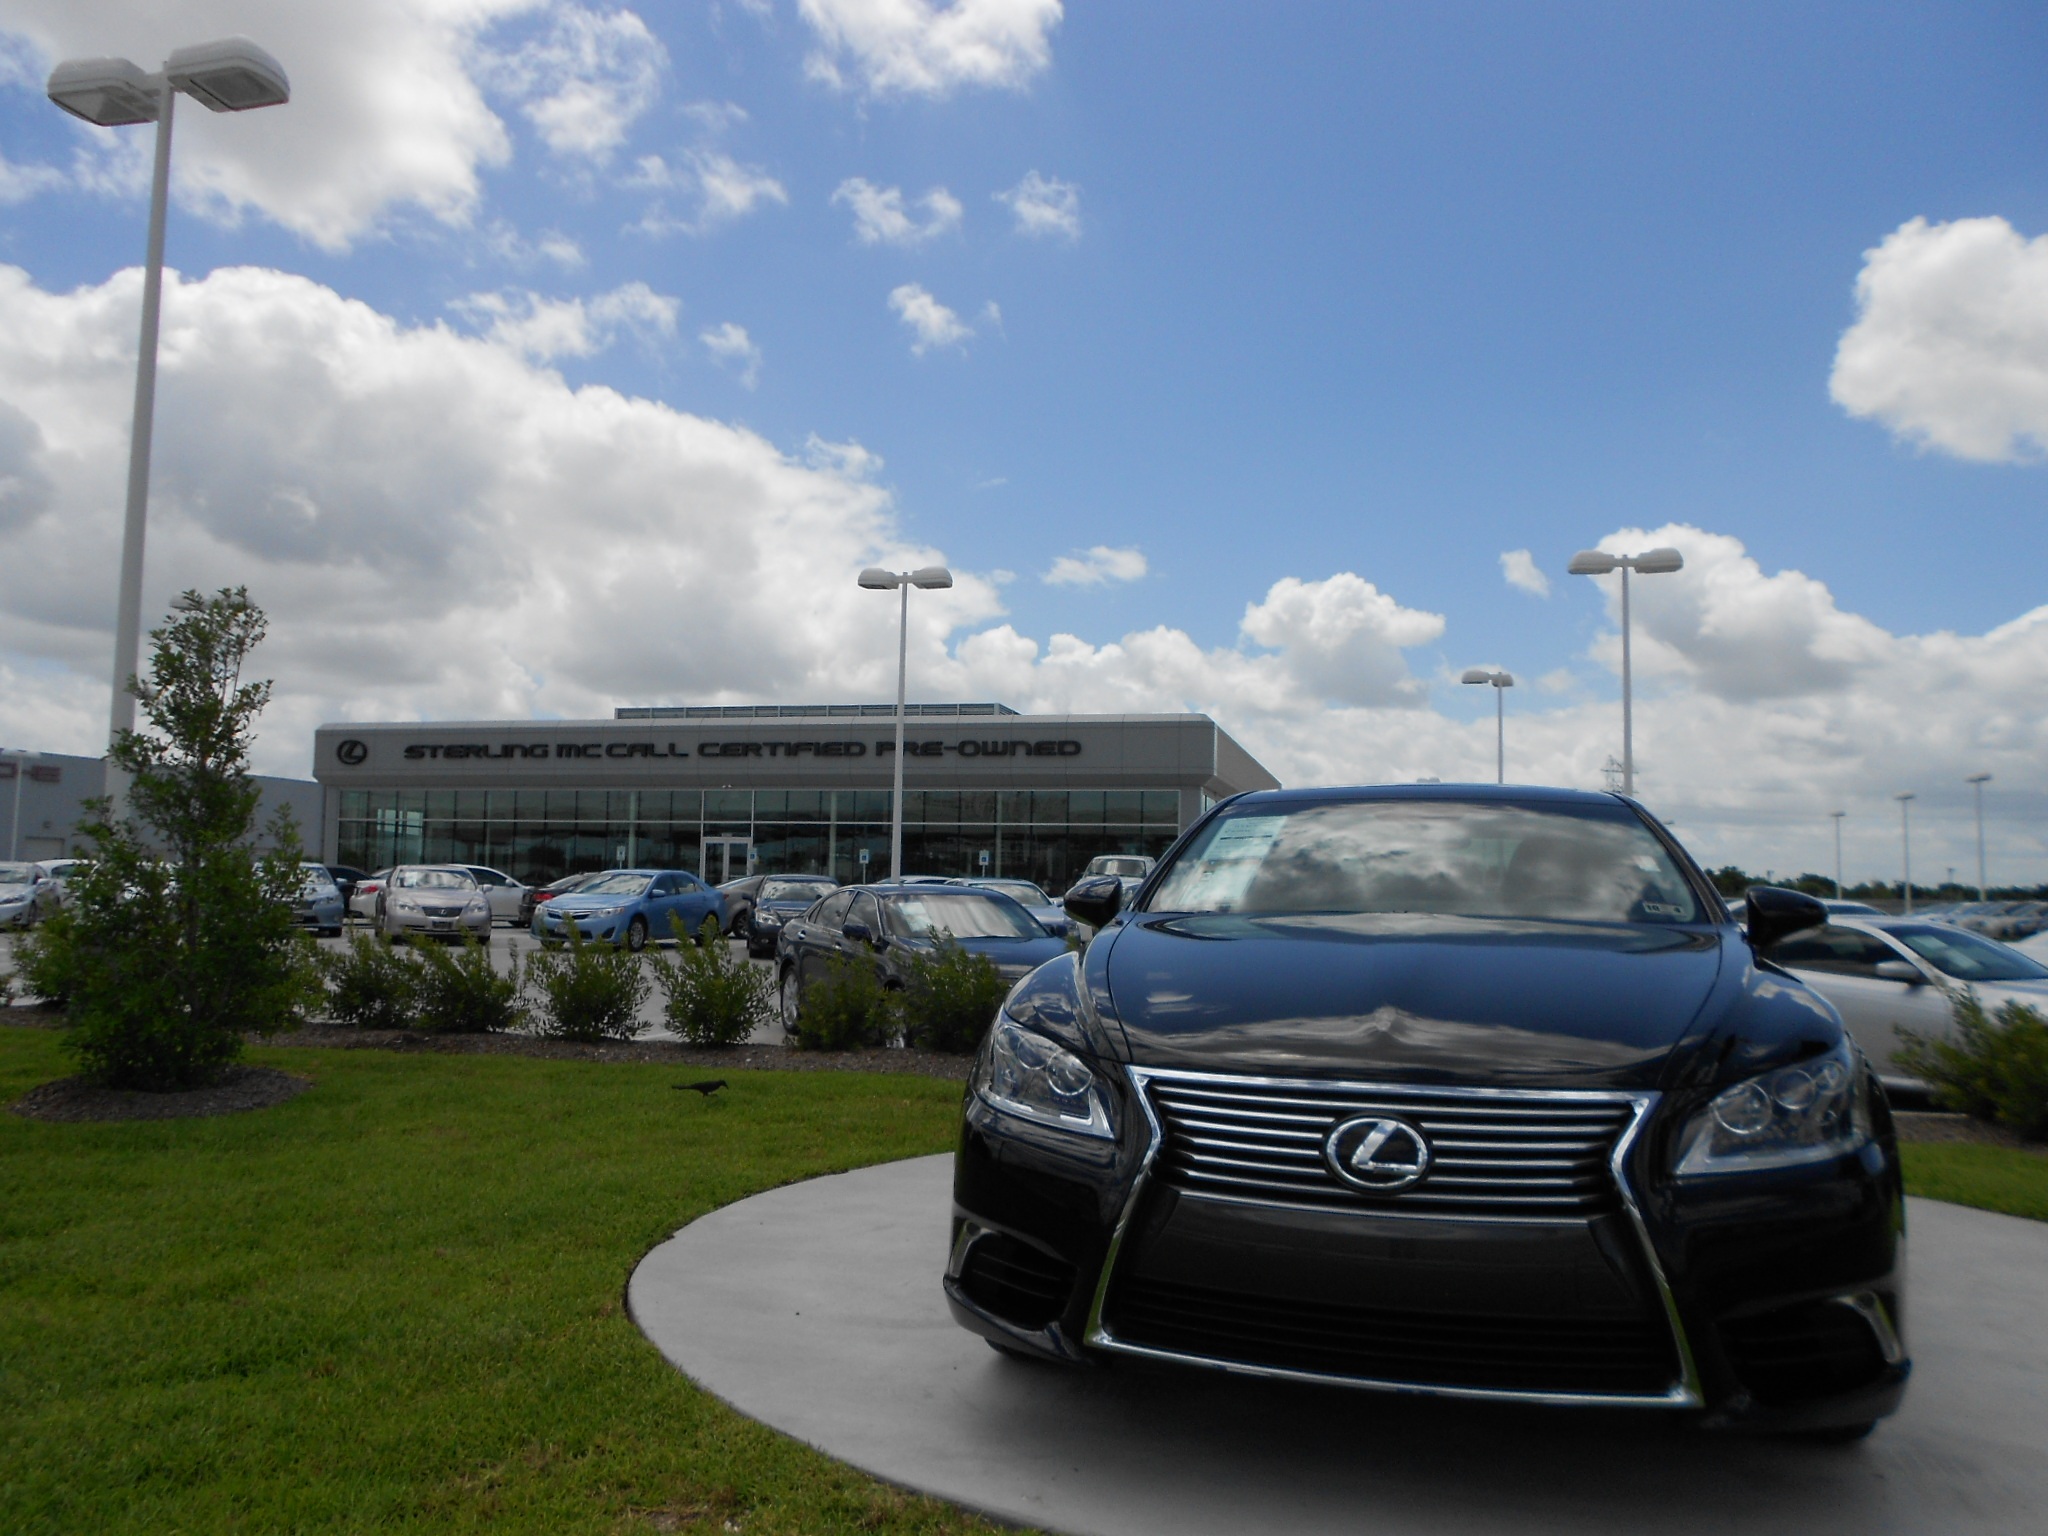 Attractive Sterling Mccall Lexus In Houston Tx 77074